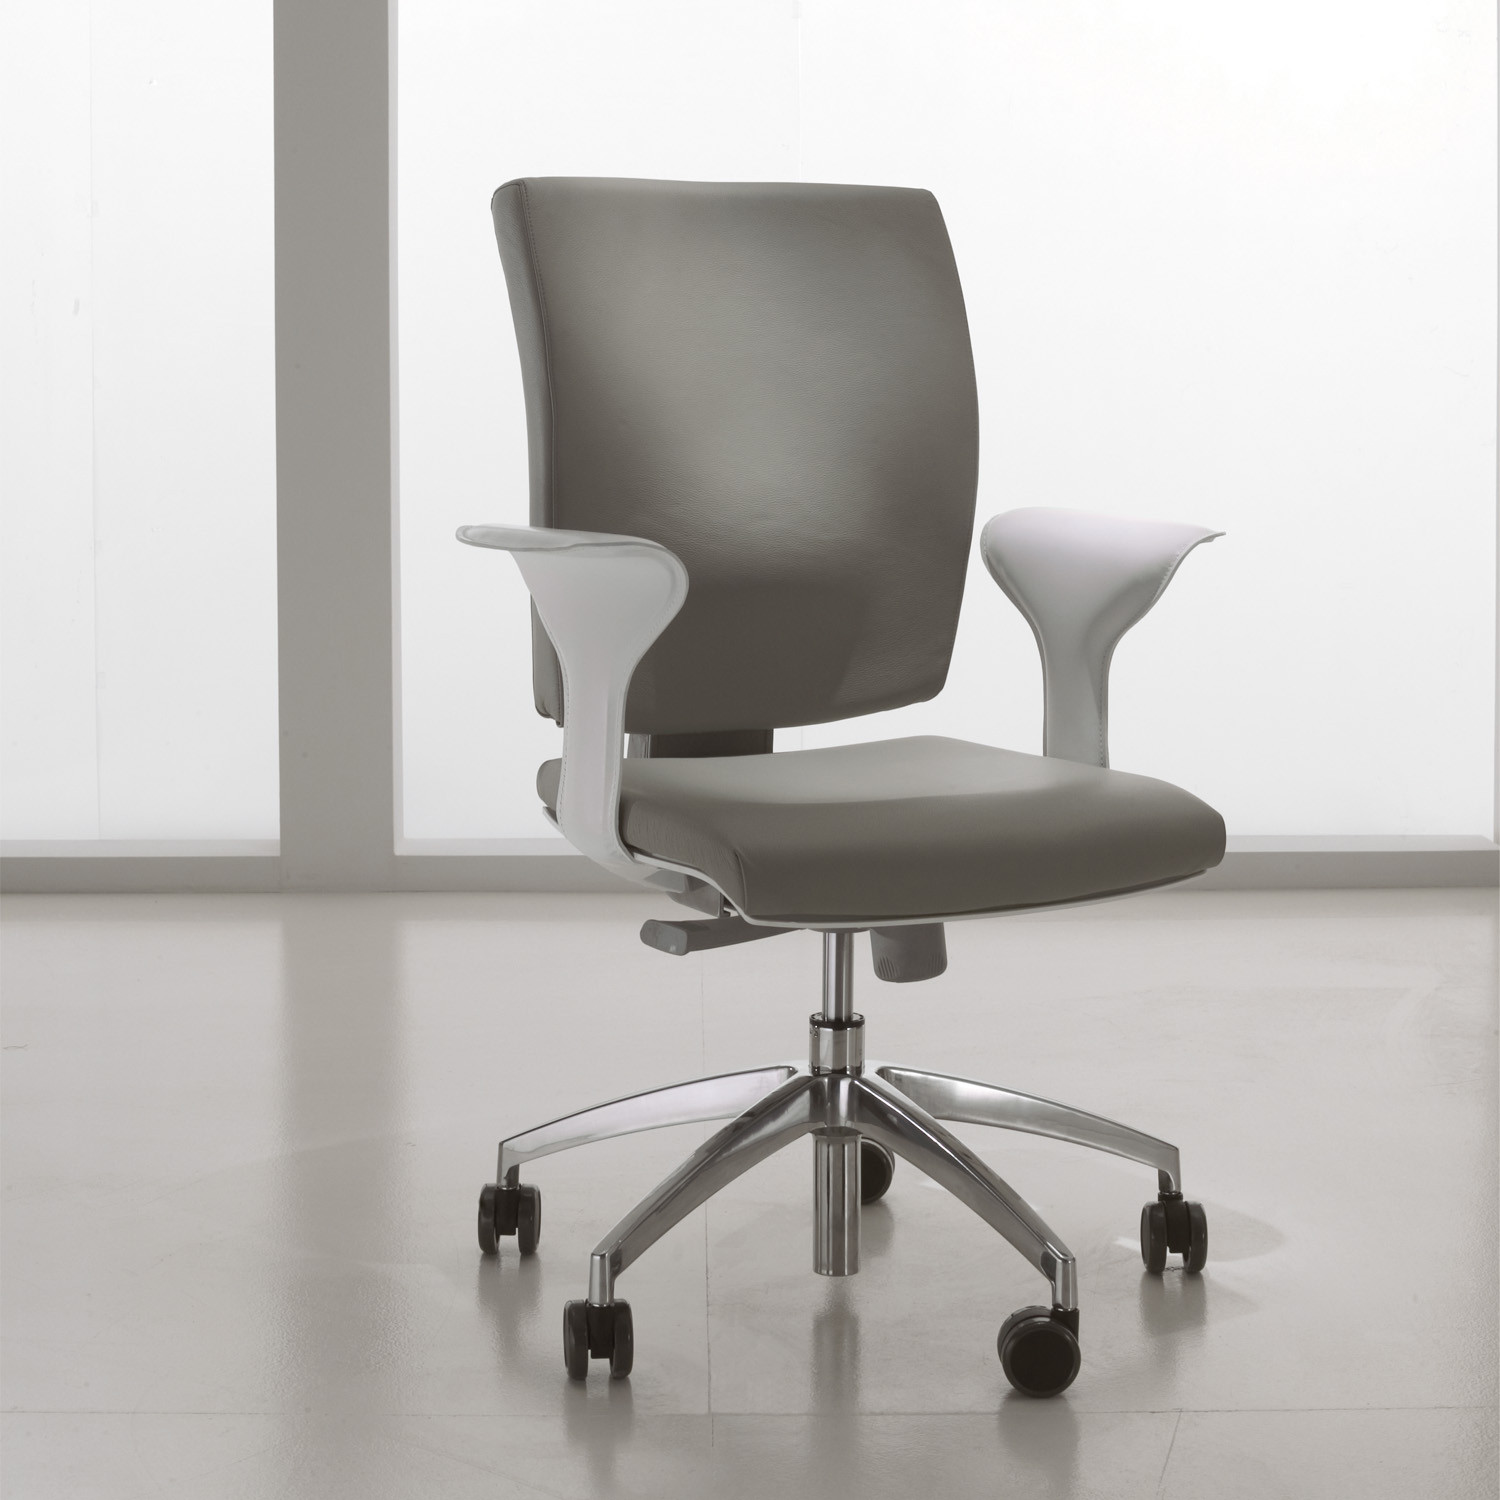 Pixel Medium Back Office Chair by Luxy